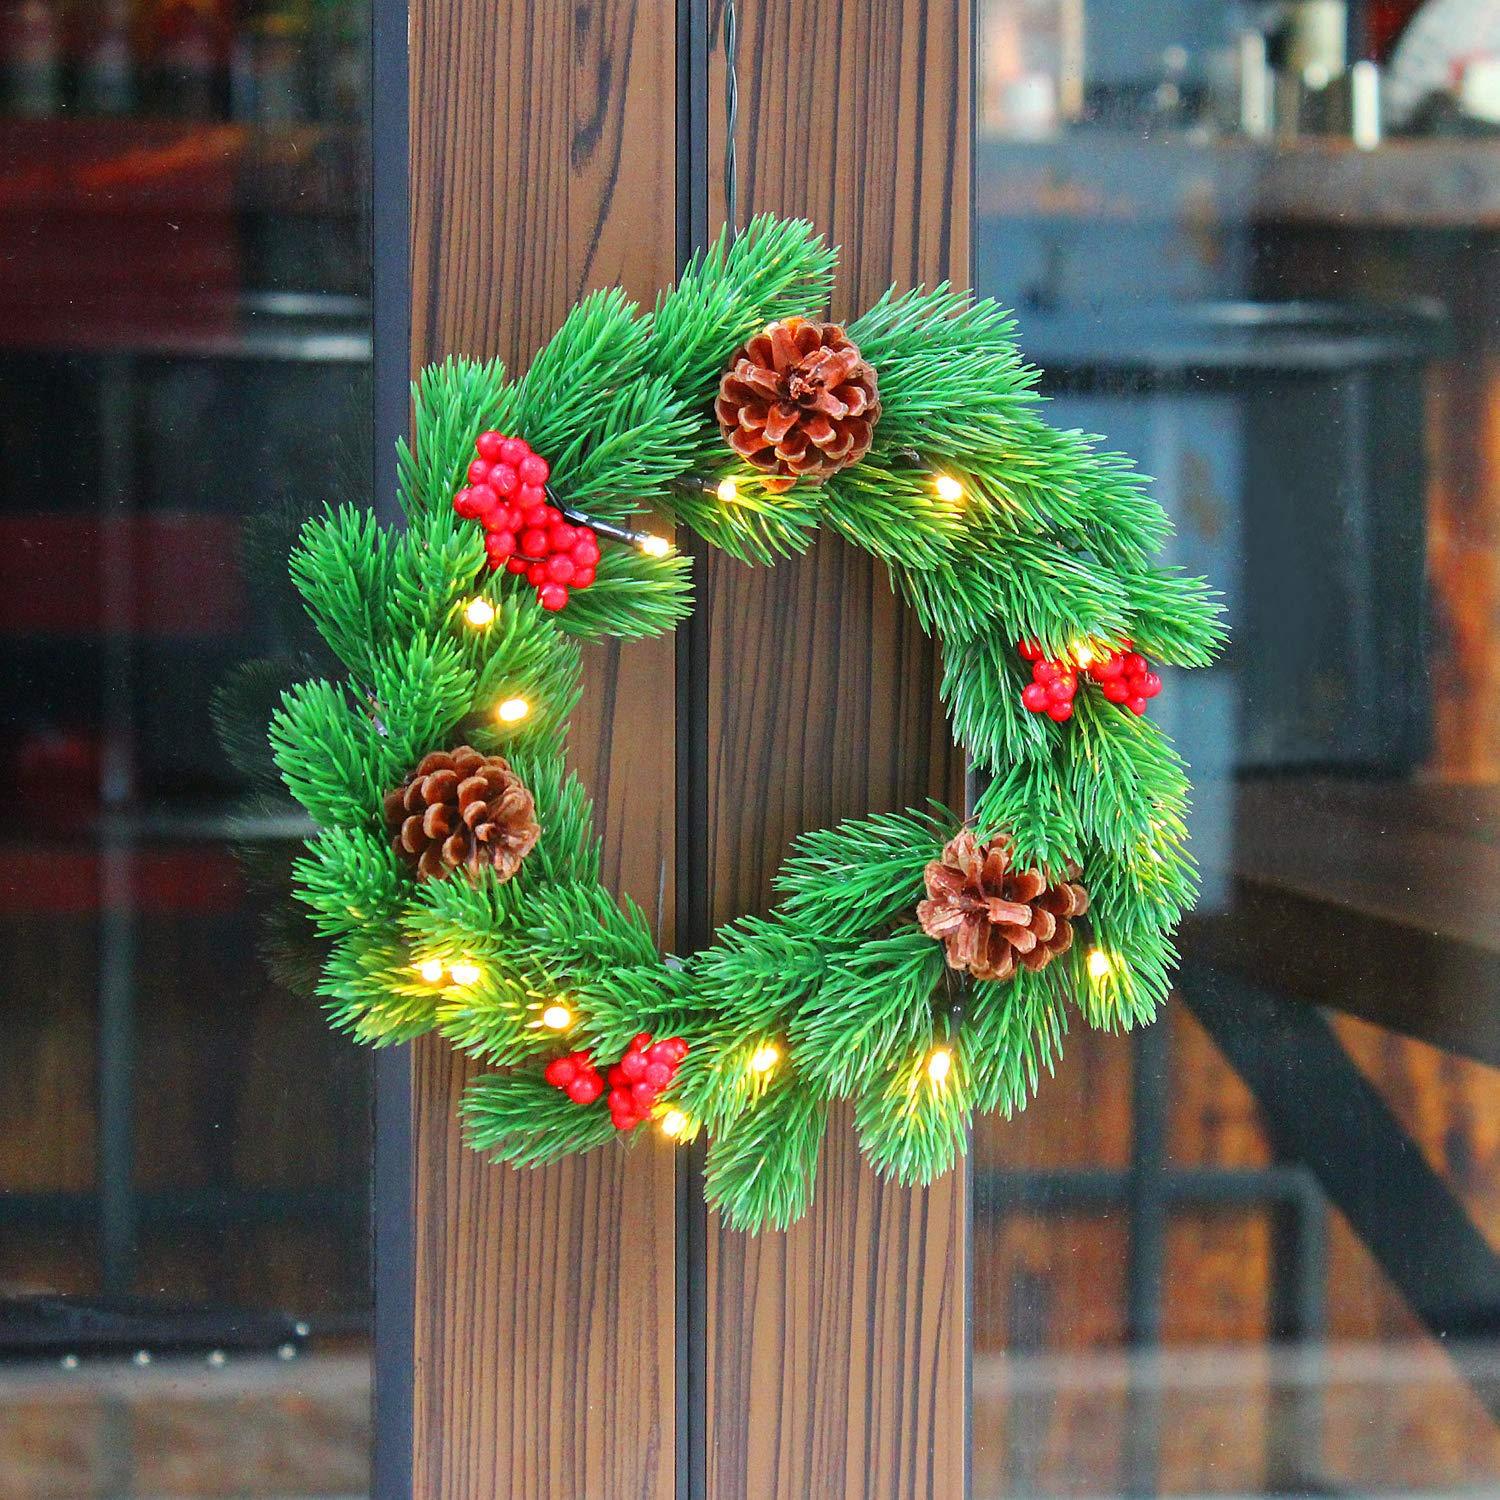 Fanshunlite 11 Inches Spruce Wreath with 3 Pine Cones, 3 Red Berries and 15 Warm White LED Lights for Christmas, Party, Indoor or Outdoor,Home Office Wall Wedding Decor,Battery Operated